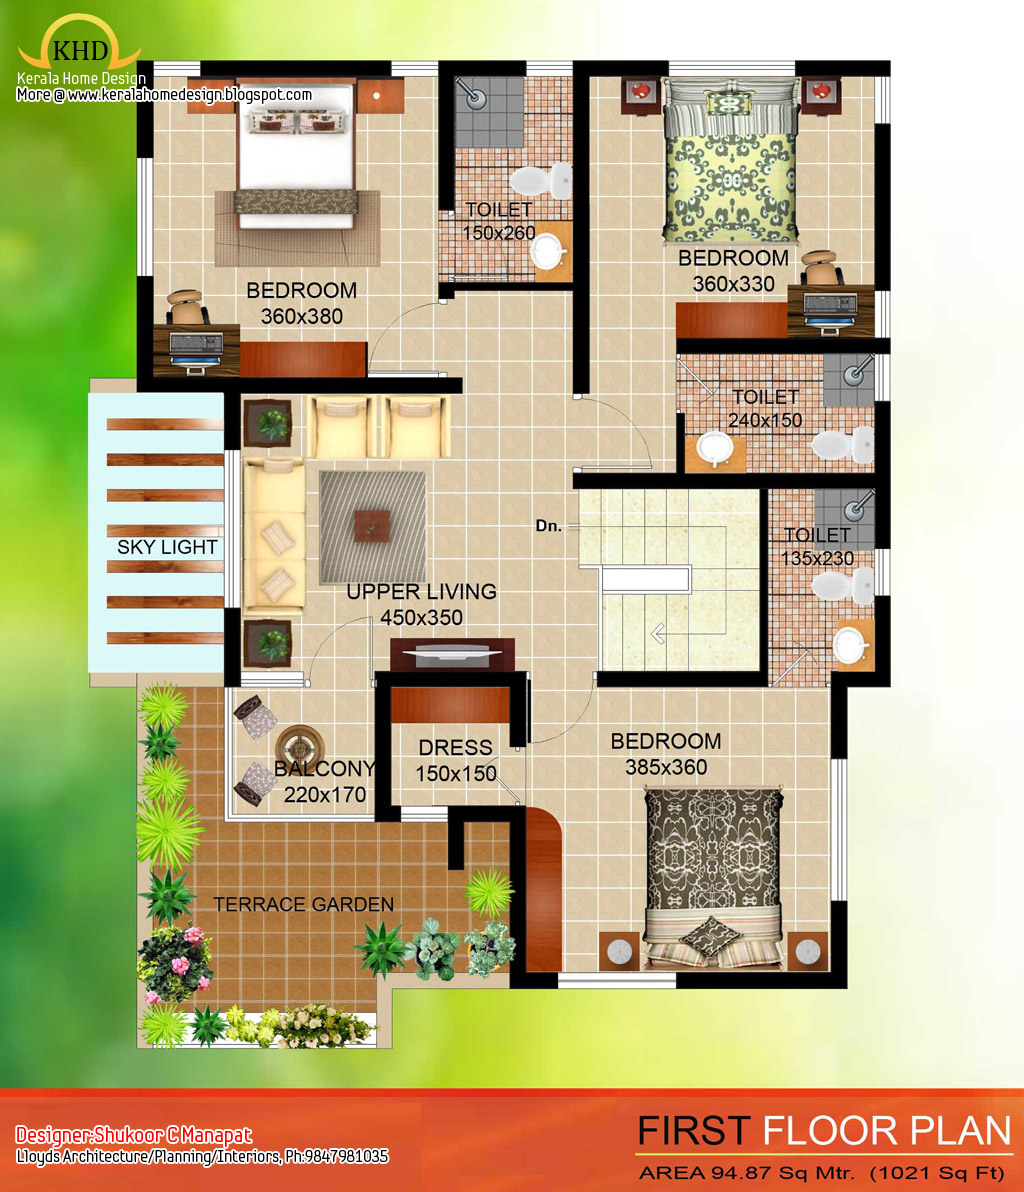 2035 sq ft 4 bedroom contemporary villa elevation and Modern villa plan